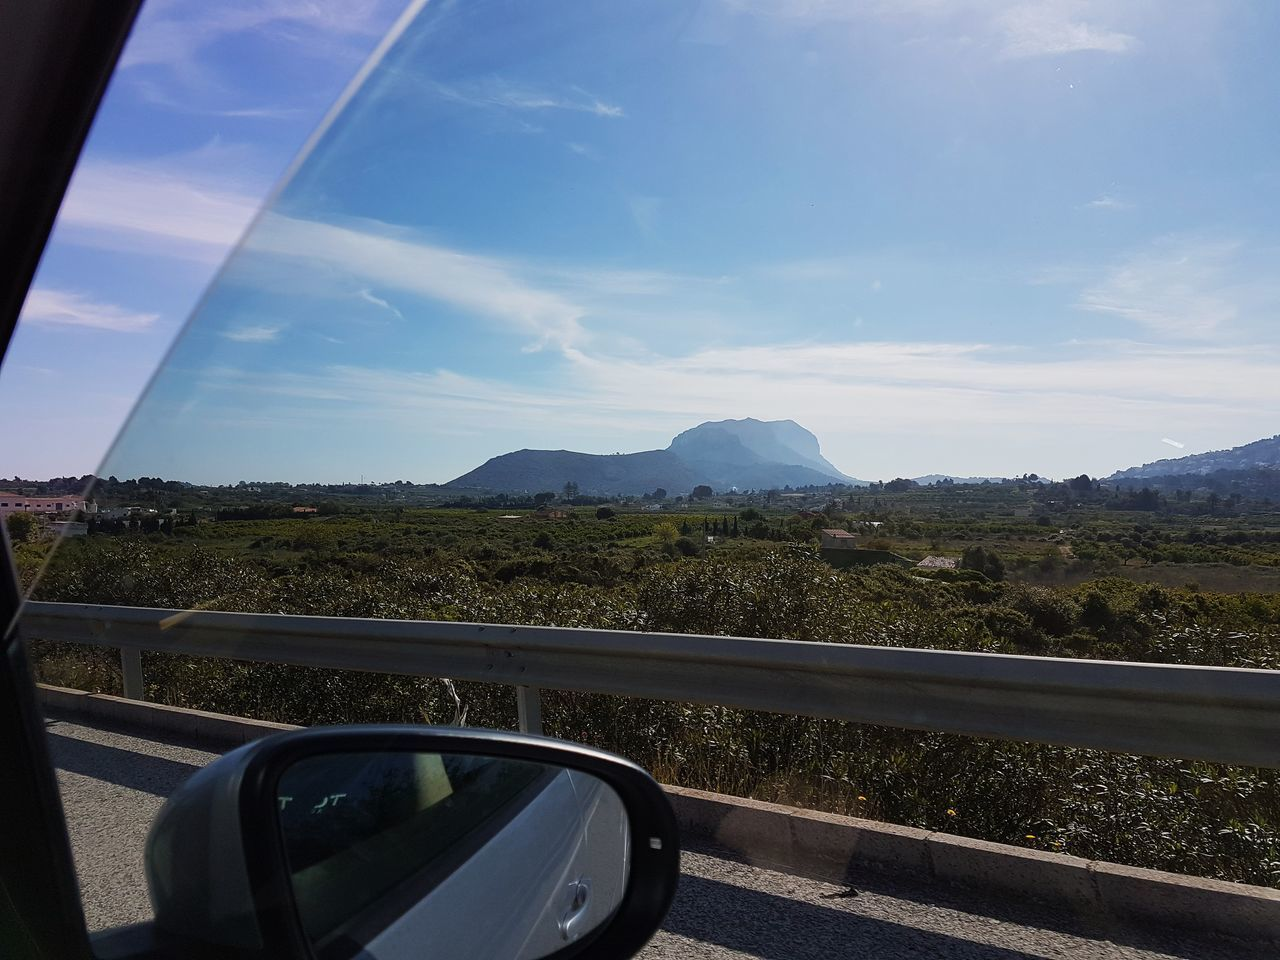 Mountain Road Cloud - Sky Landscape Day Sky No People Outdoors Nature Water Beauty In Nature SPAIN Alicante Denia The Great Outdoors - 2017 EyeEm Awards The Street Photographer - 2017 EyeEm Awards Live For The Story